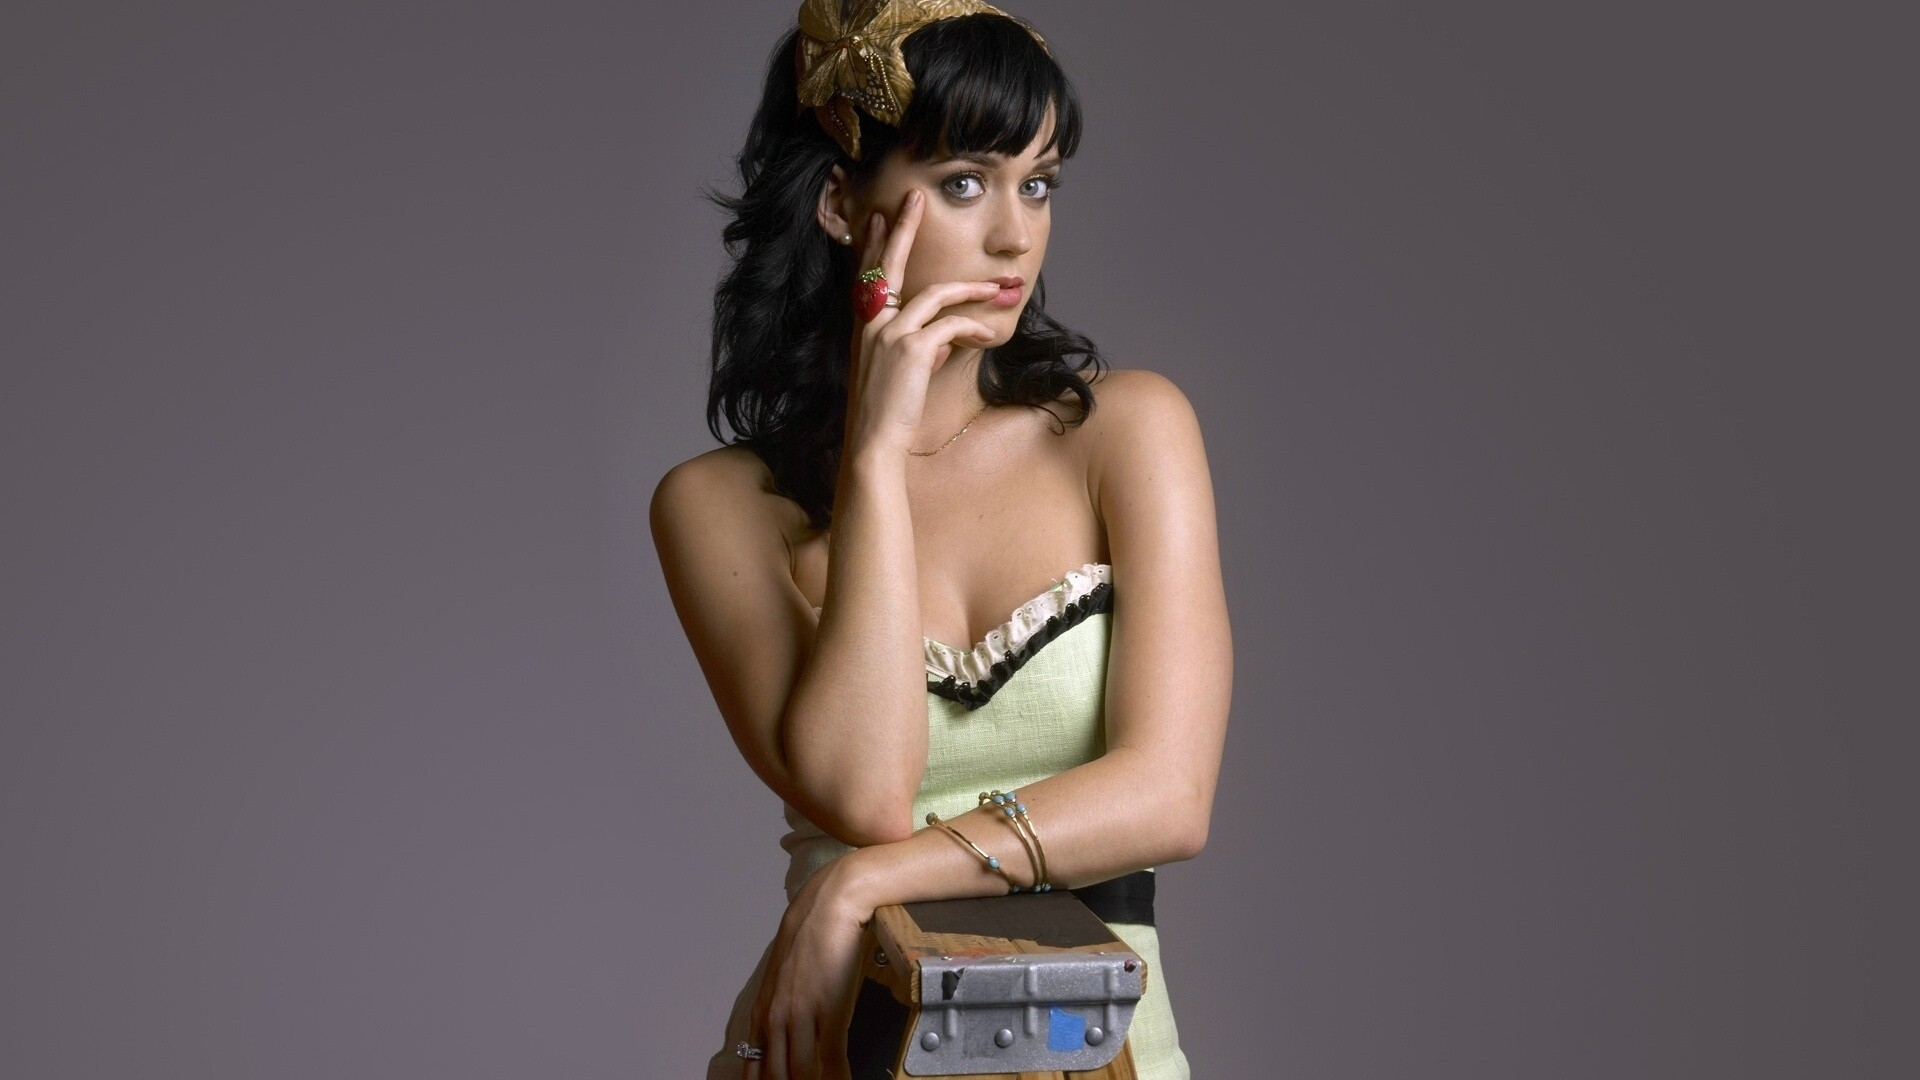 Katy Perry Wallpaper for pc